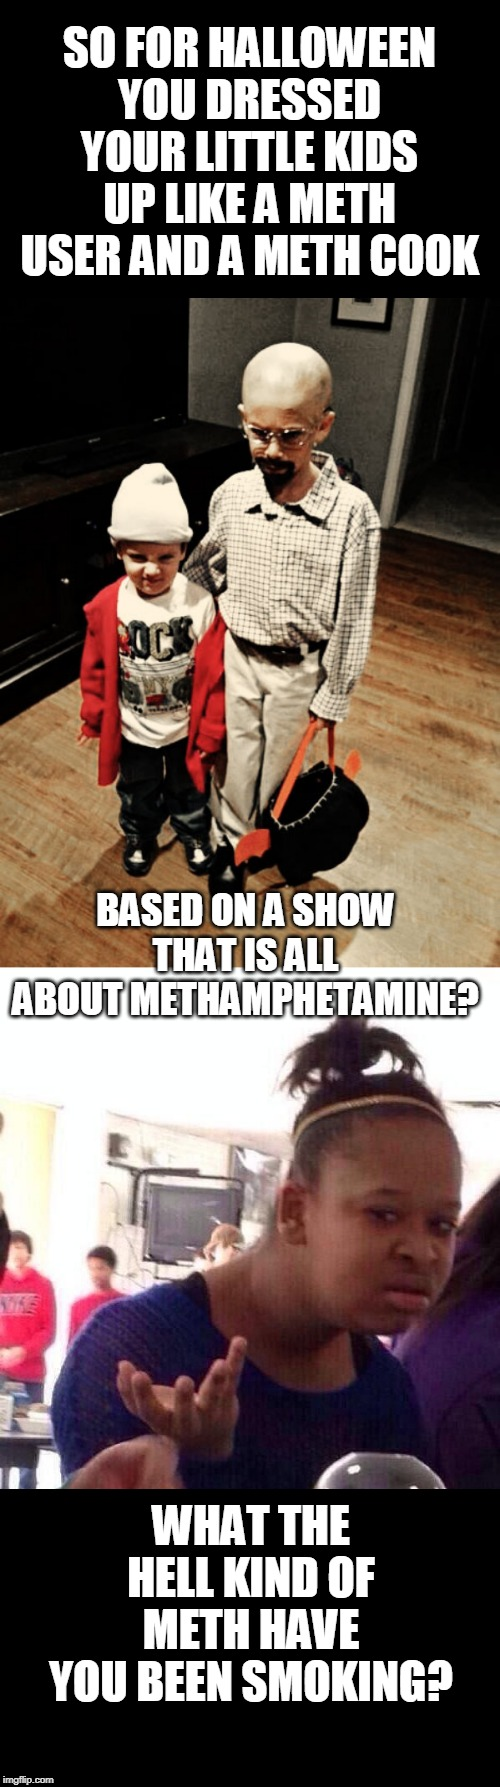 BREAKING BAD PARENTS |  SO FOR HALLOWEEN YOU DRESSED YOUR LITTLE KIDS UP LIKE A METH USER AND A METH COOK; BASED ON A SHOW THAT IS ALL ABOUT METHAMPHETAMINE? WHAT THE HELL KIND OF METH HAVE YOU BEEN SMOKING? | image tagged in memes,black girl wat,bad parenting,halloween | made w/ Imgflip meme maker